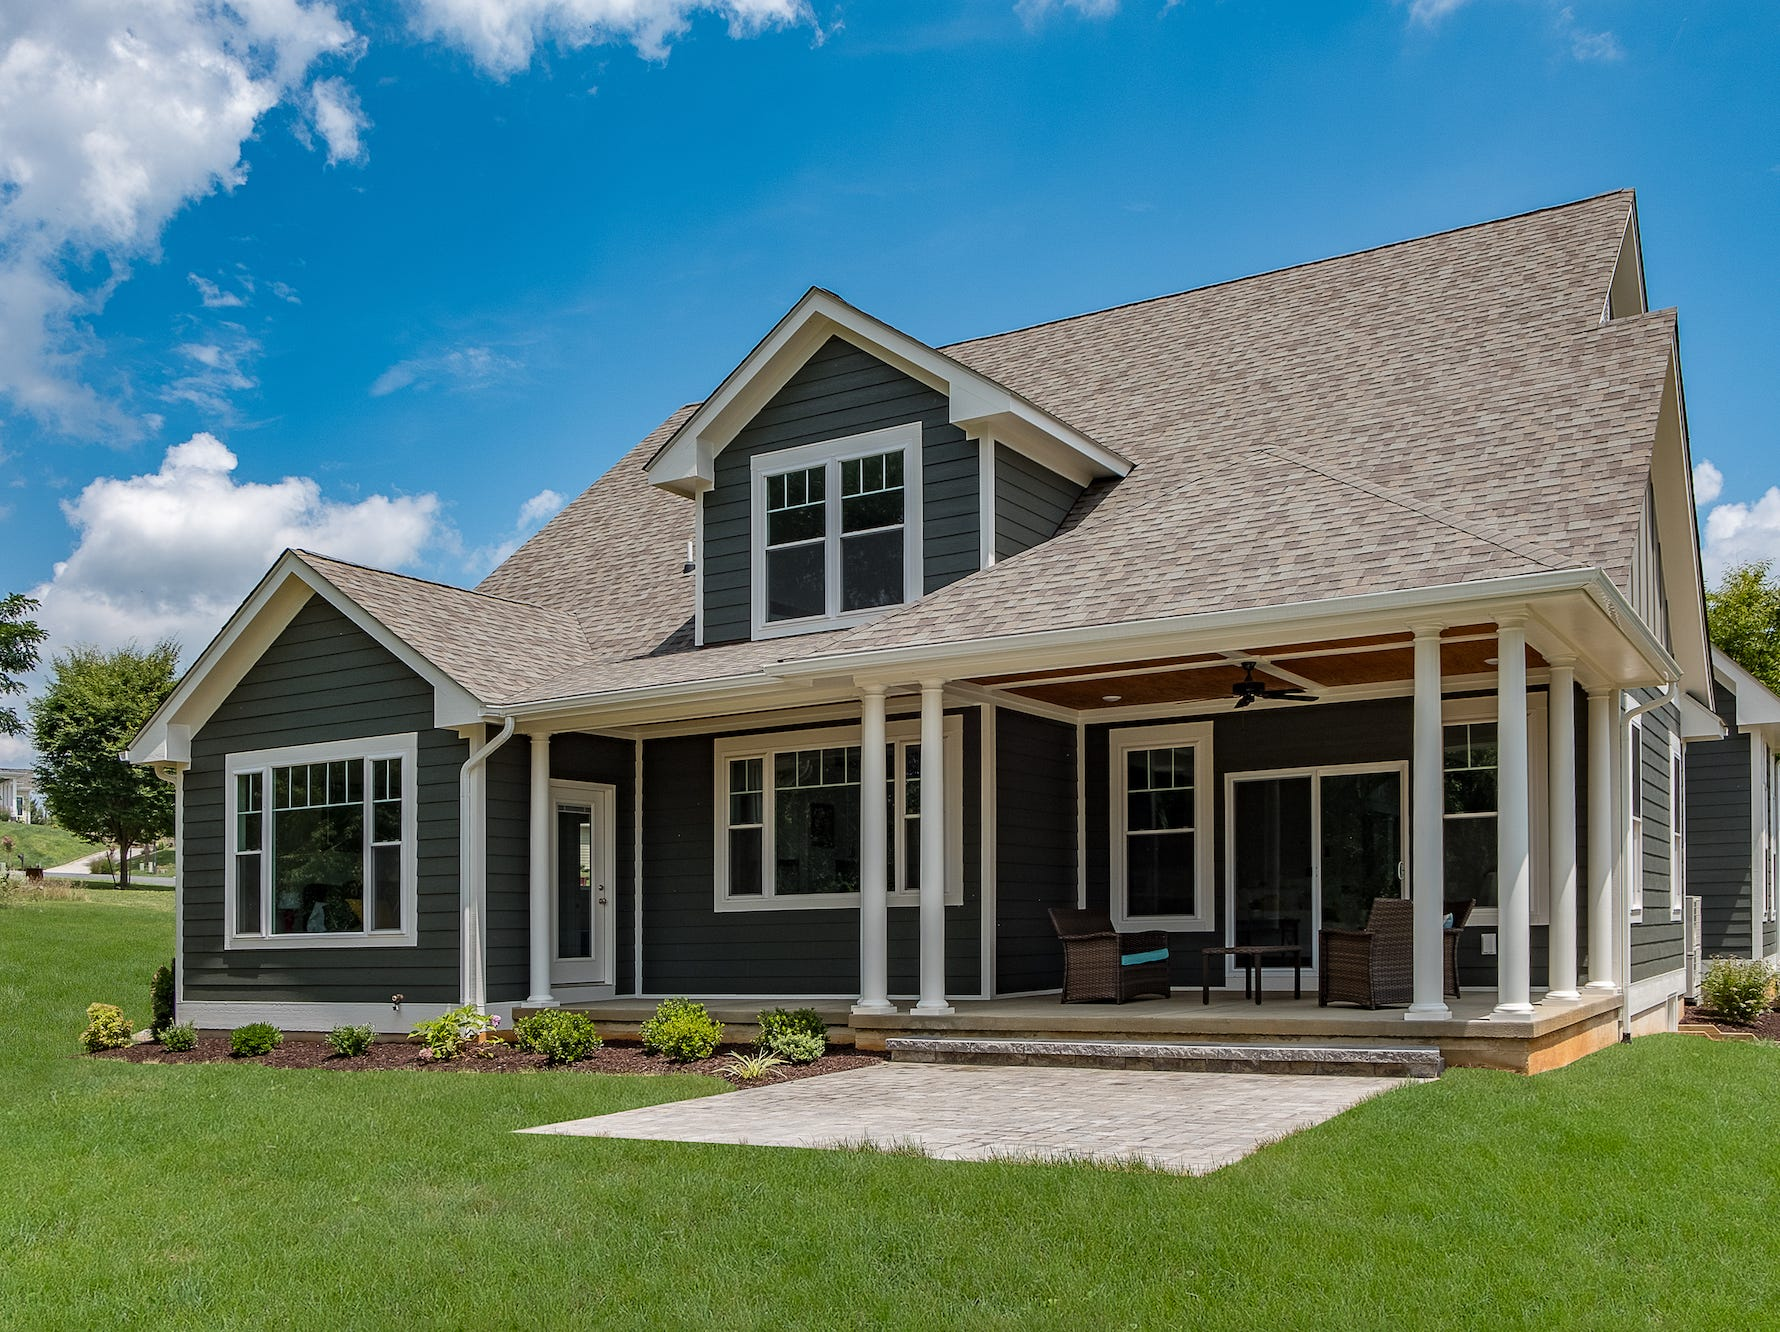 This home at 2508 Belvue Road in Waynesboro received the Pearl Home Certification of Platinum, which is the highest rating for energy efficiency.